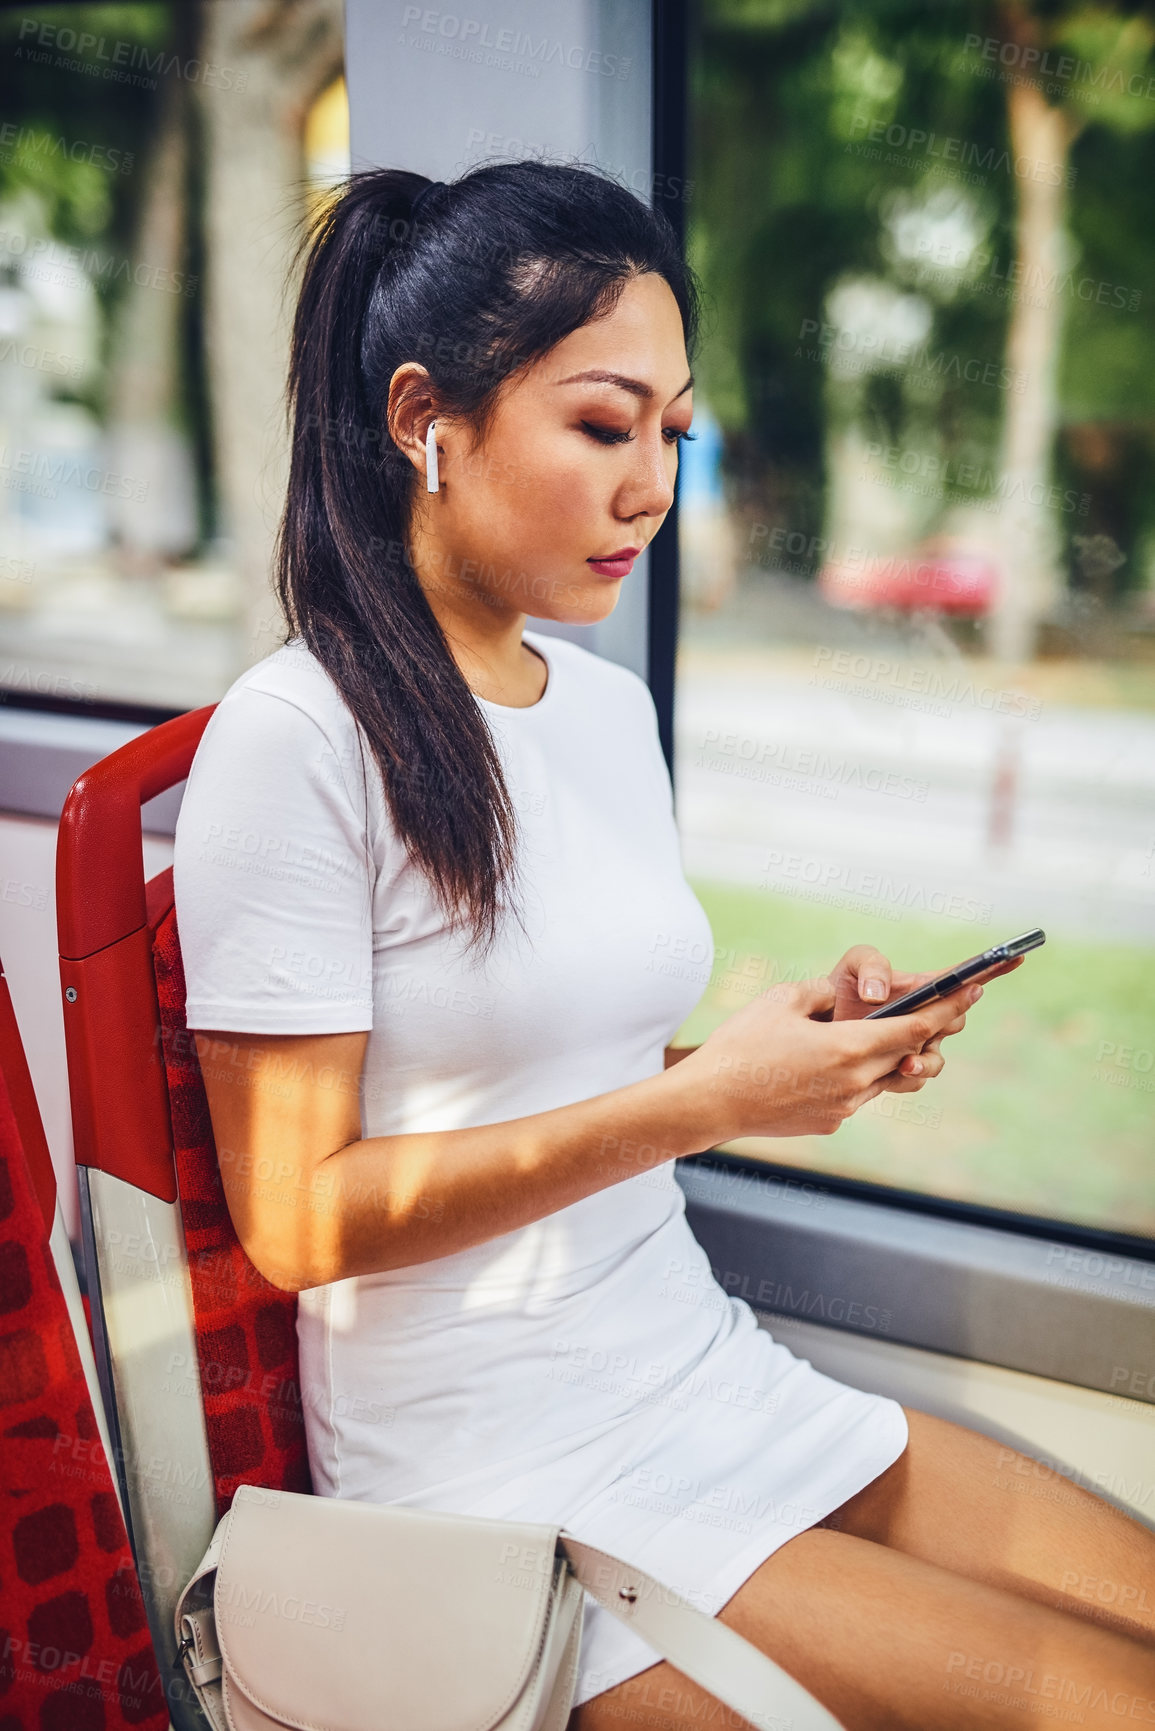 Buy stock photo Cropped shot of an attractive young woman wearing earphones and using her cellphone while sitting in a bus